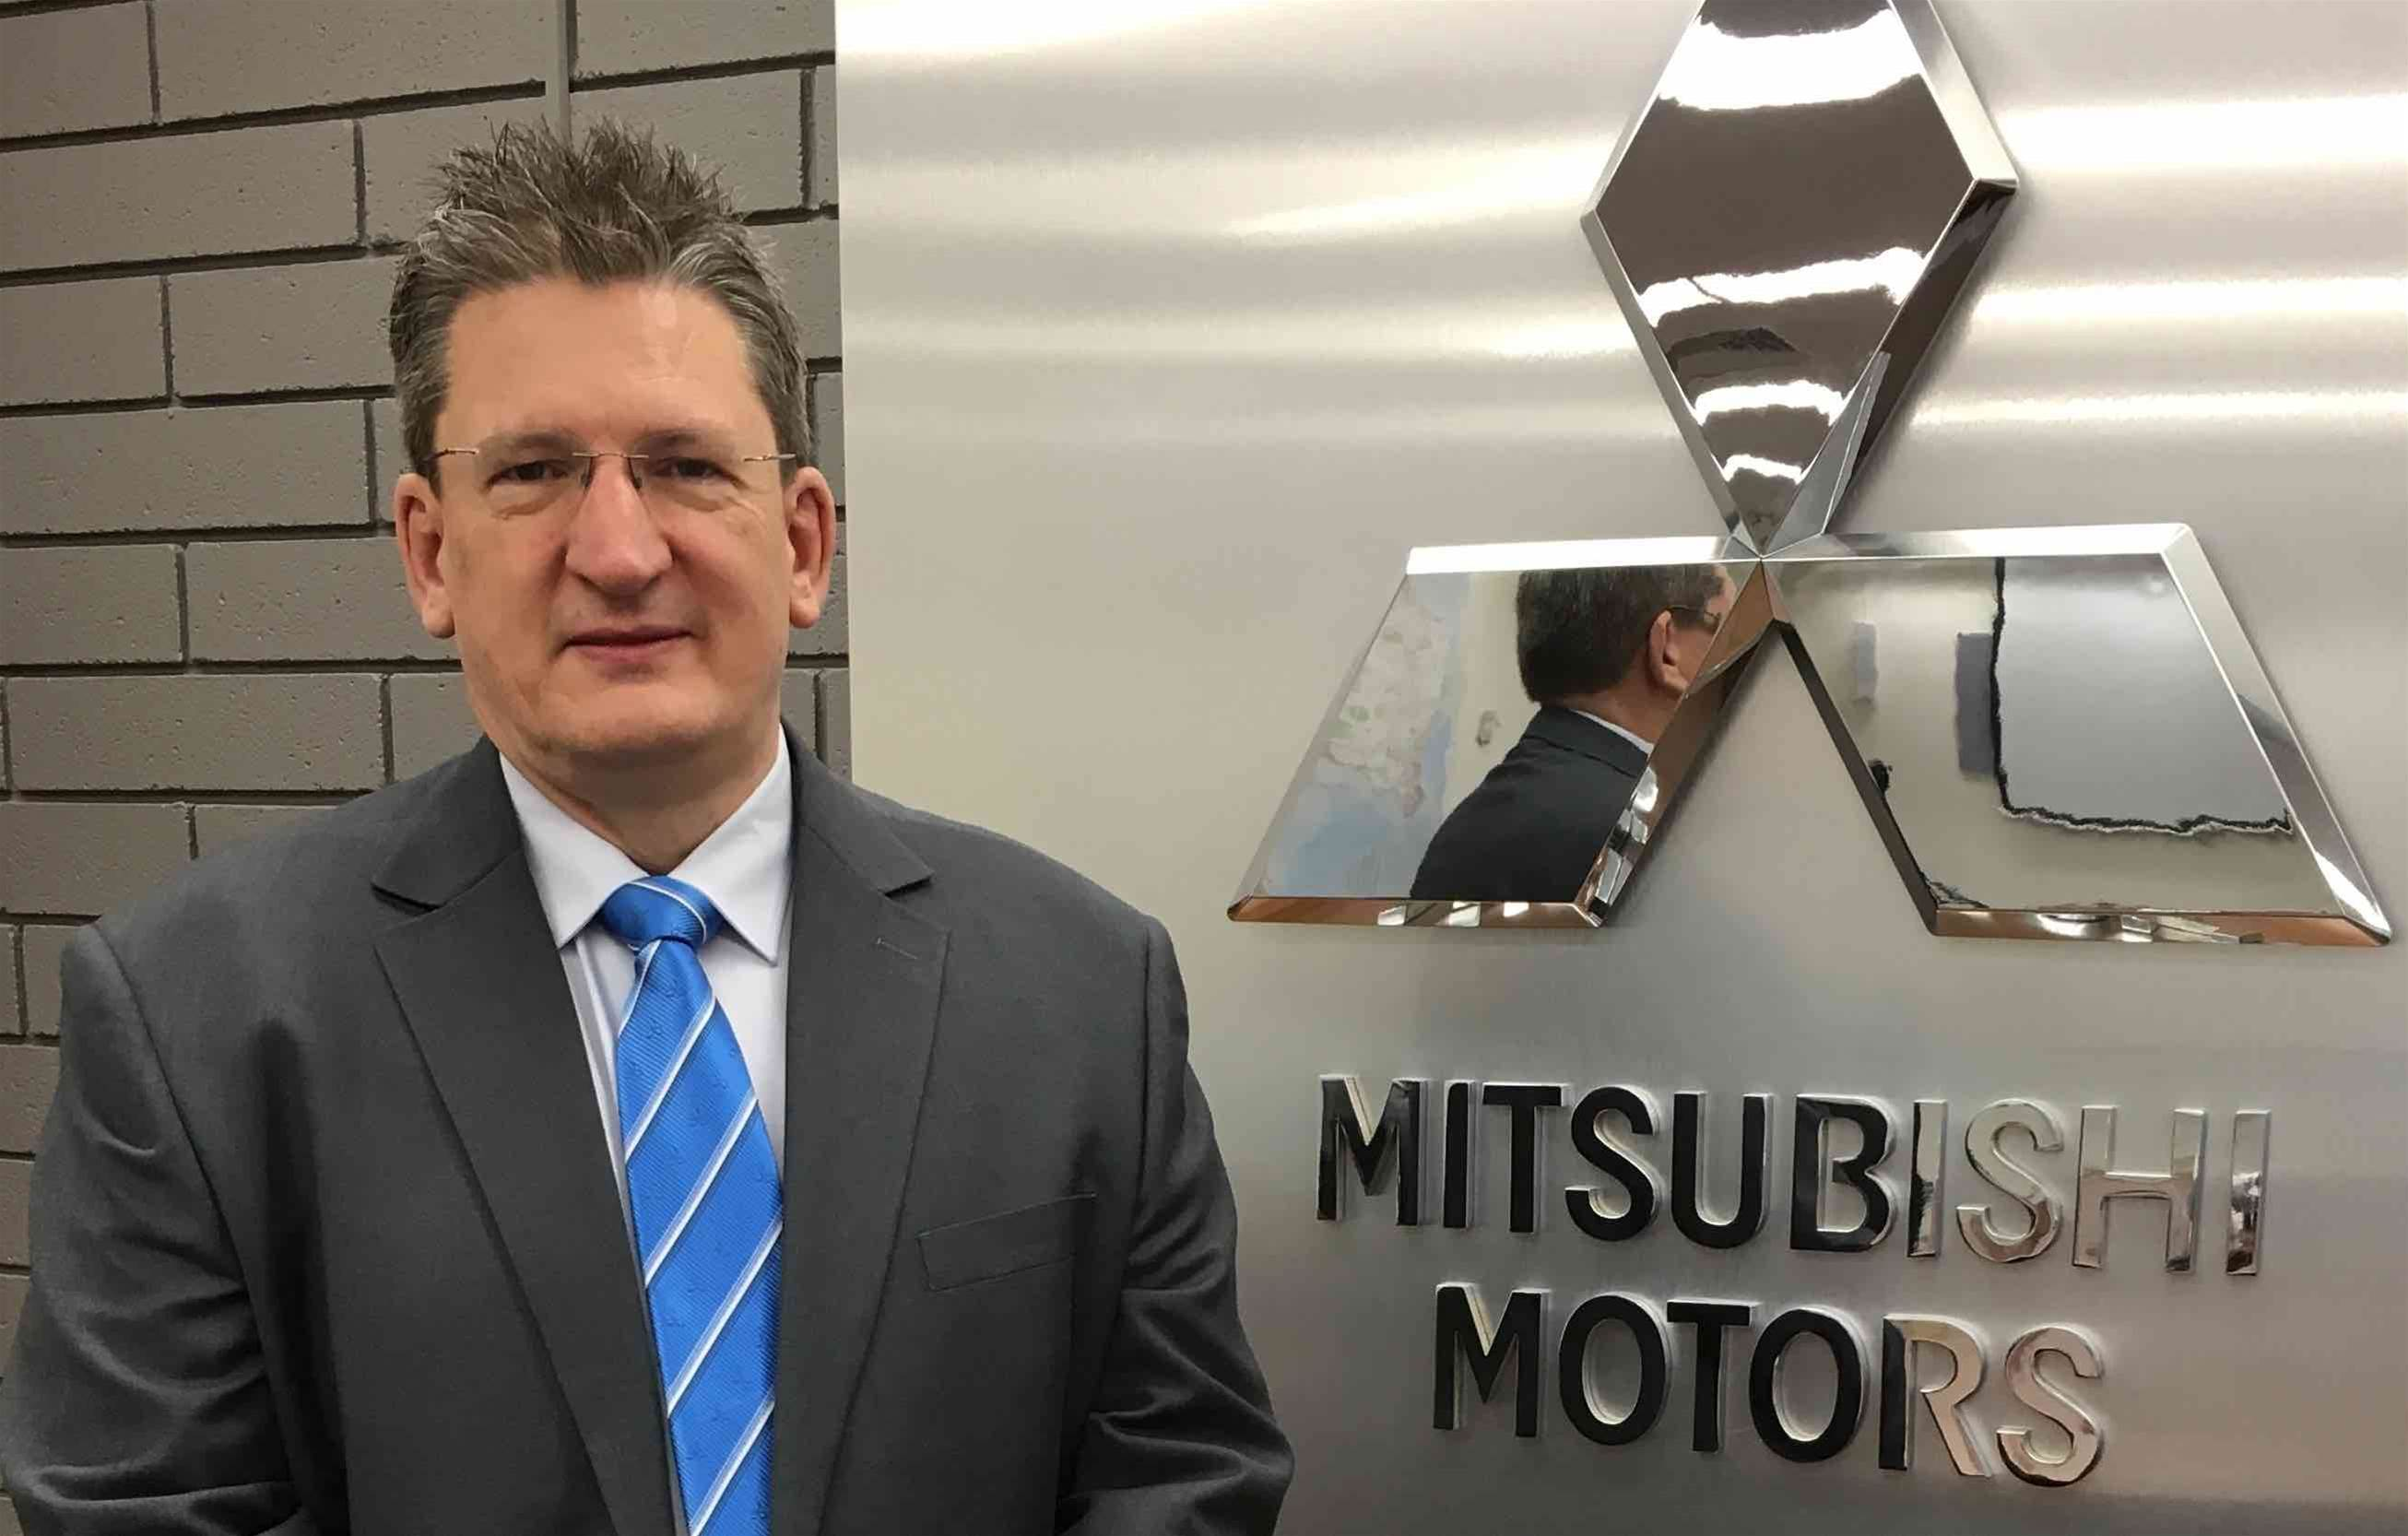 Mitsubishi Motors Australia re-hosts SAP core in cloud